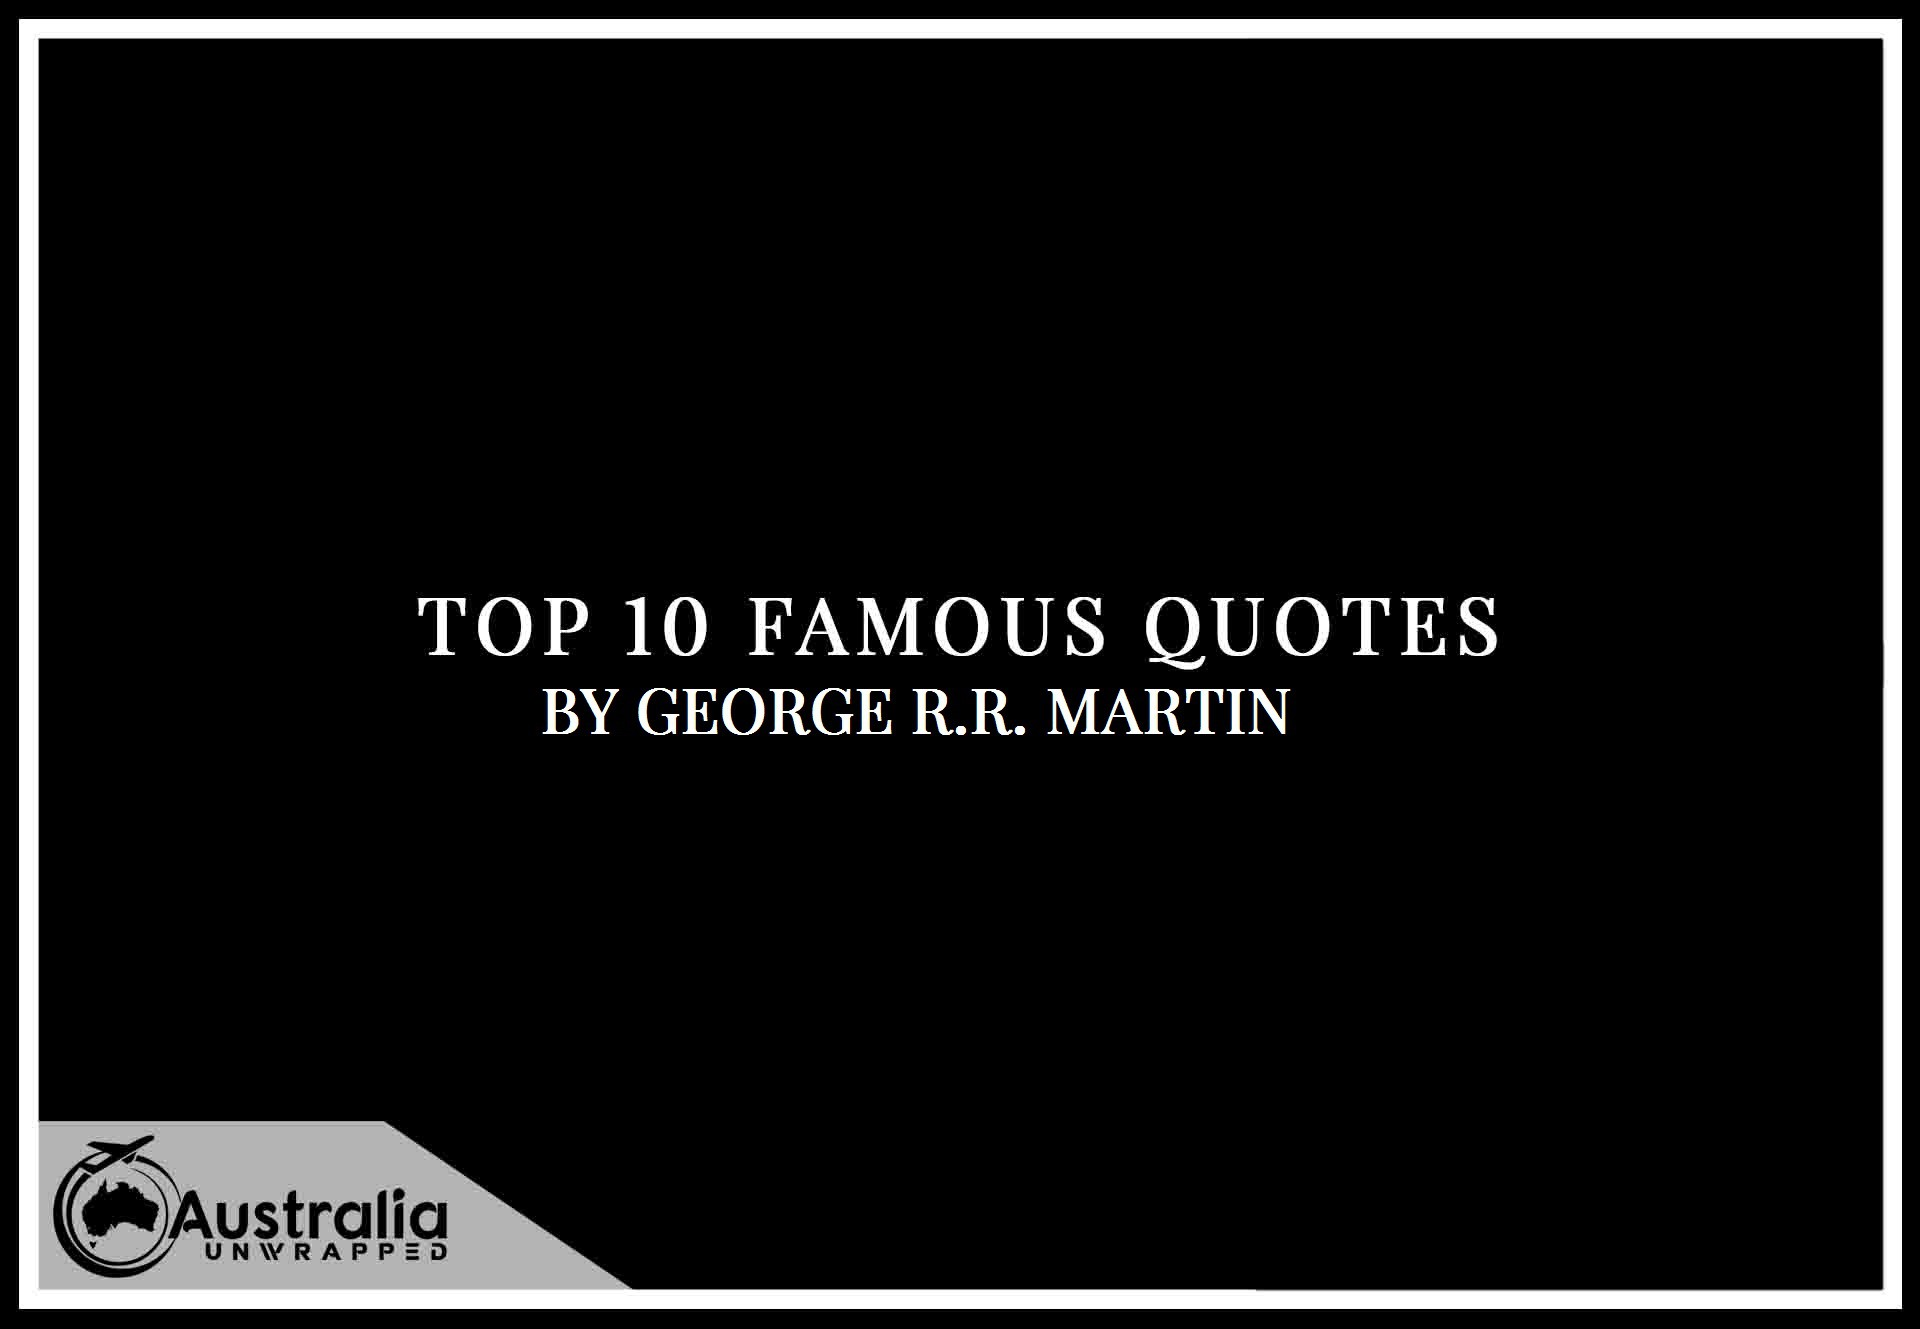 George R.R. Martin's Top 10 Popular and Famous Quotes